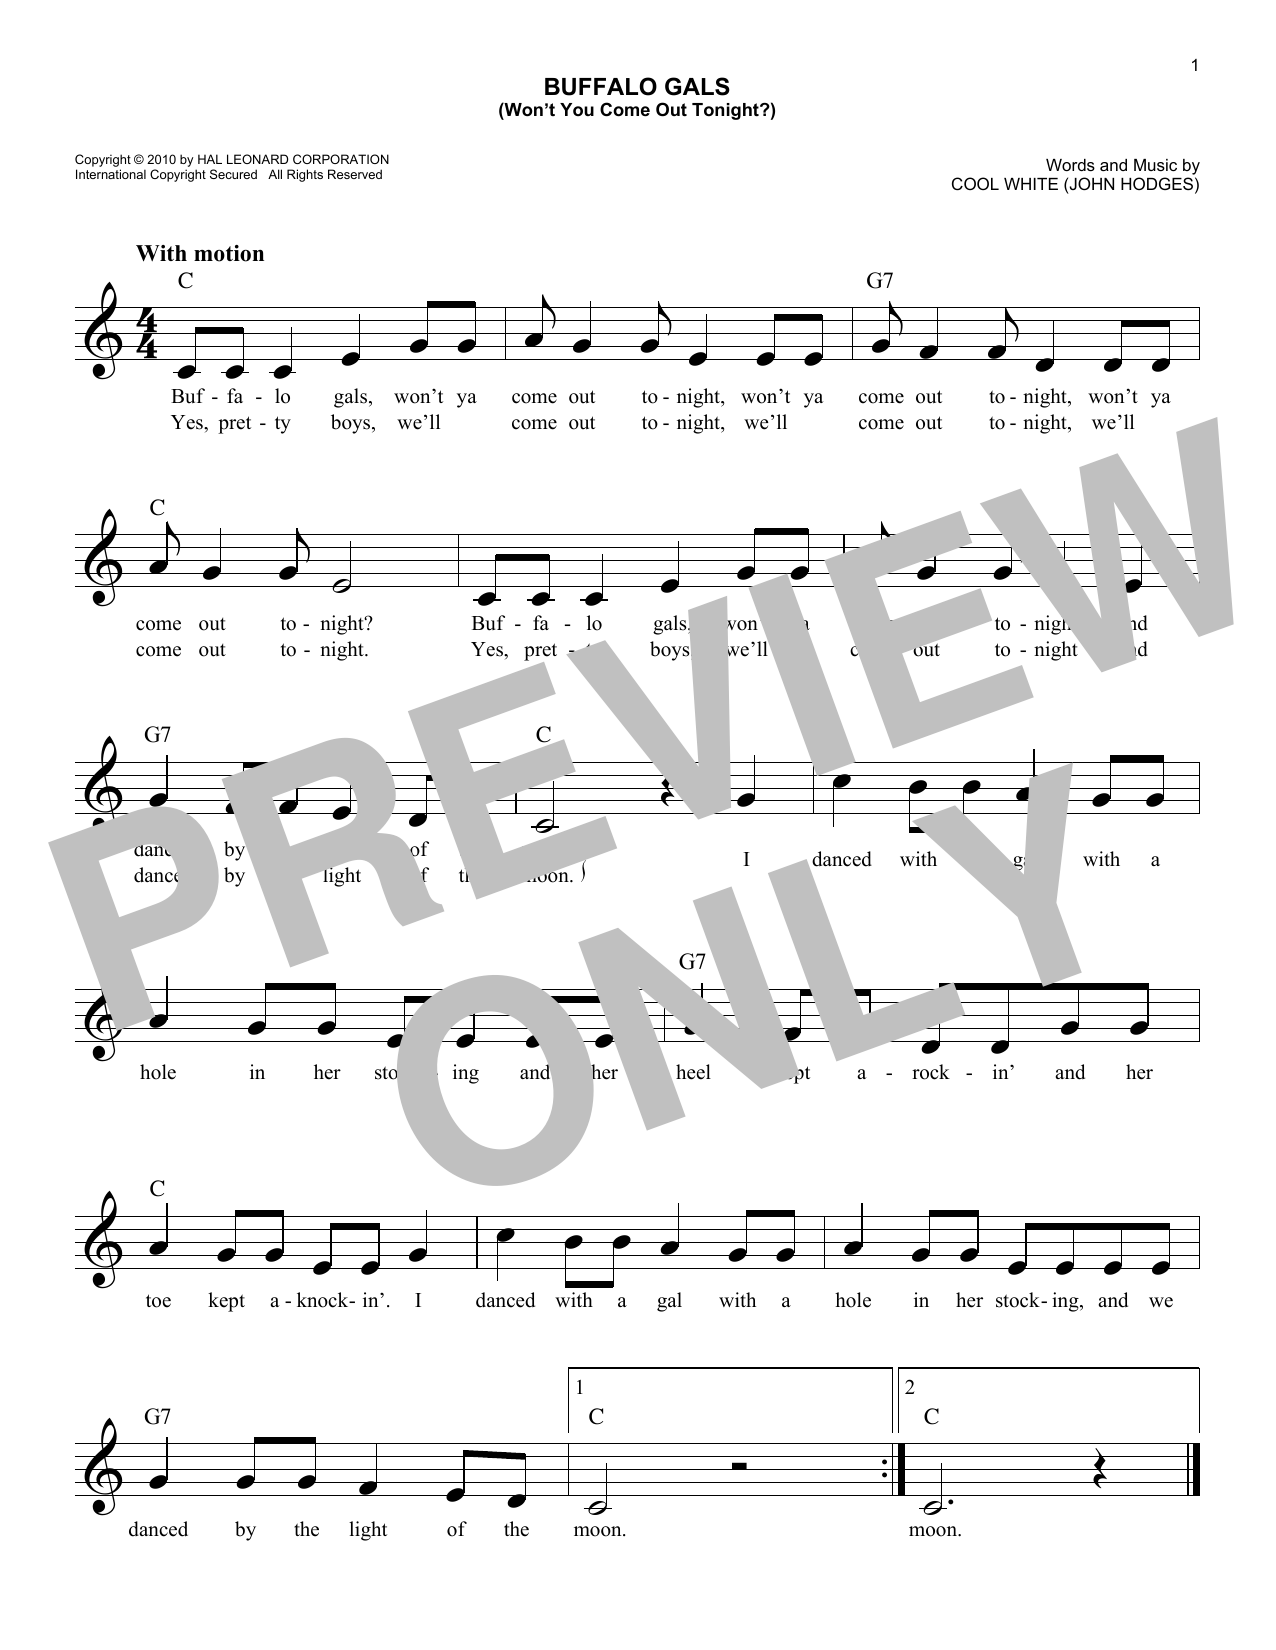 Cool White (John Hodges) Buffalo Gals (Won't You Come Out Tonight?) sheet music notes and chords. Download Printable PDF.